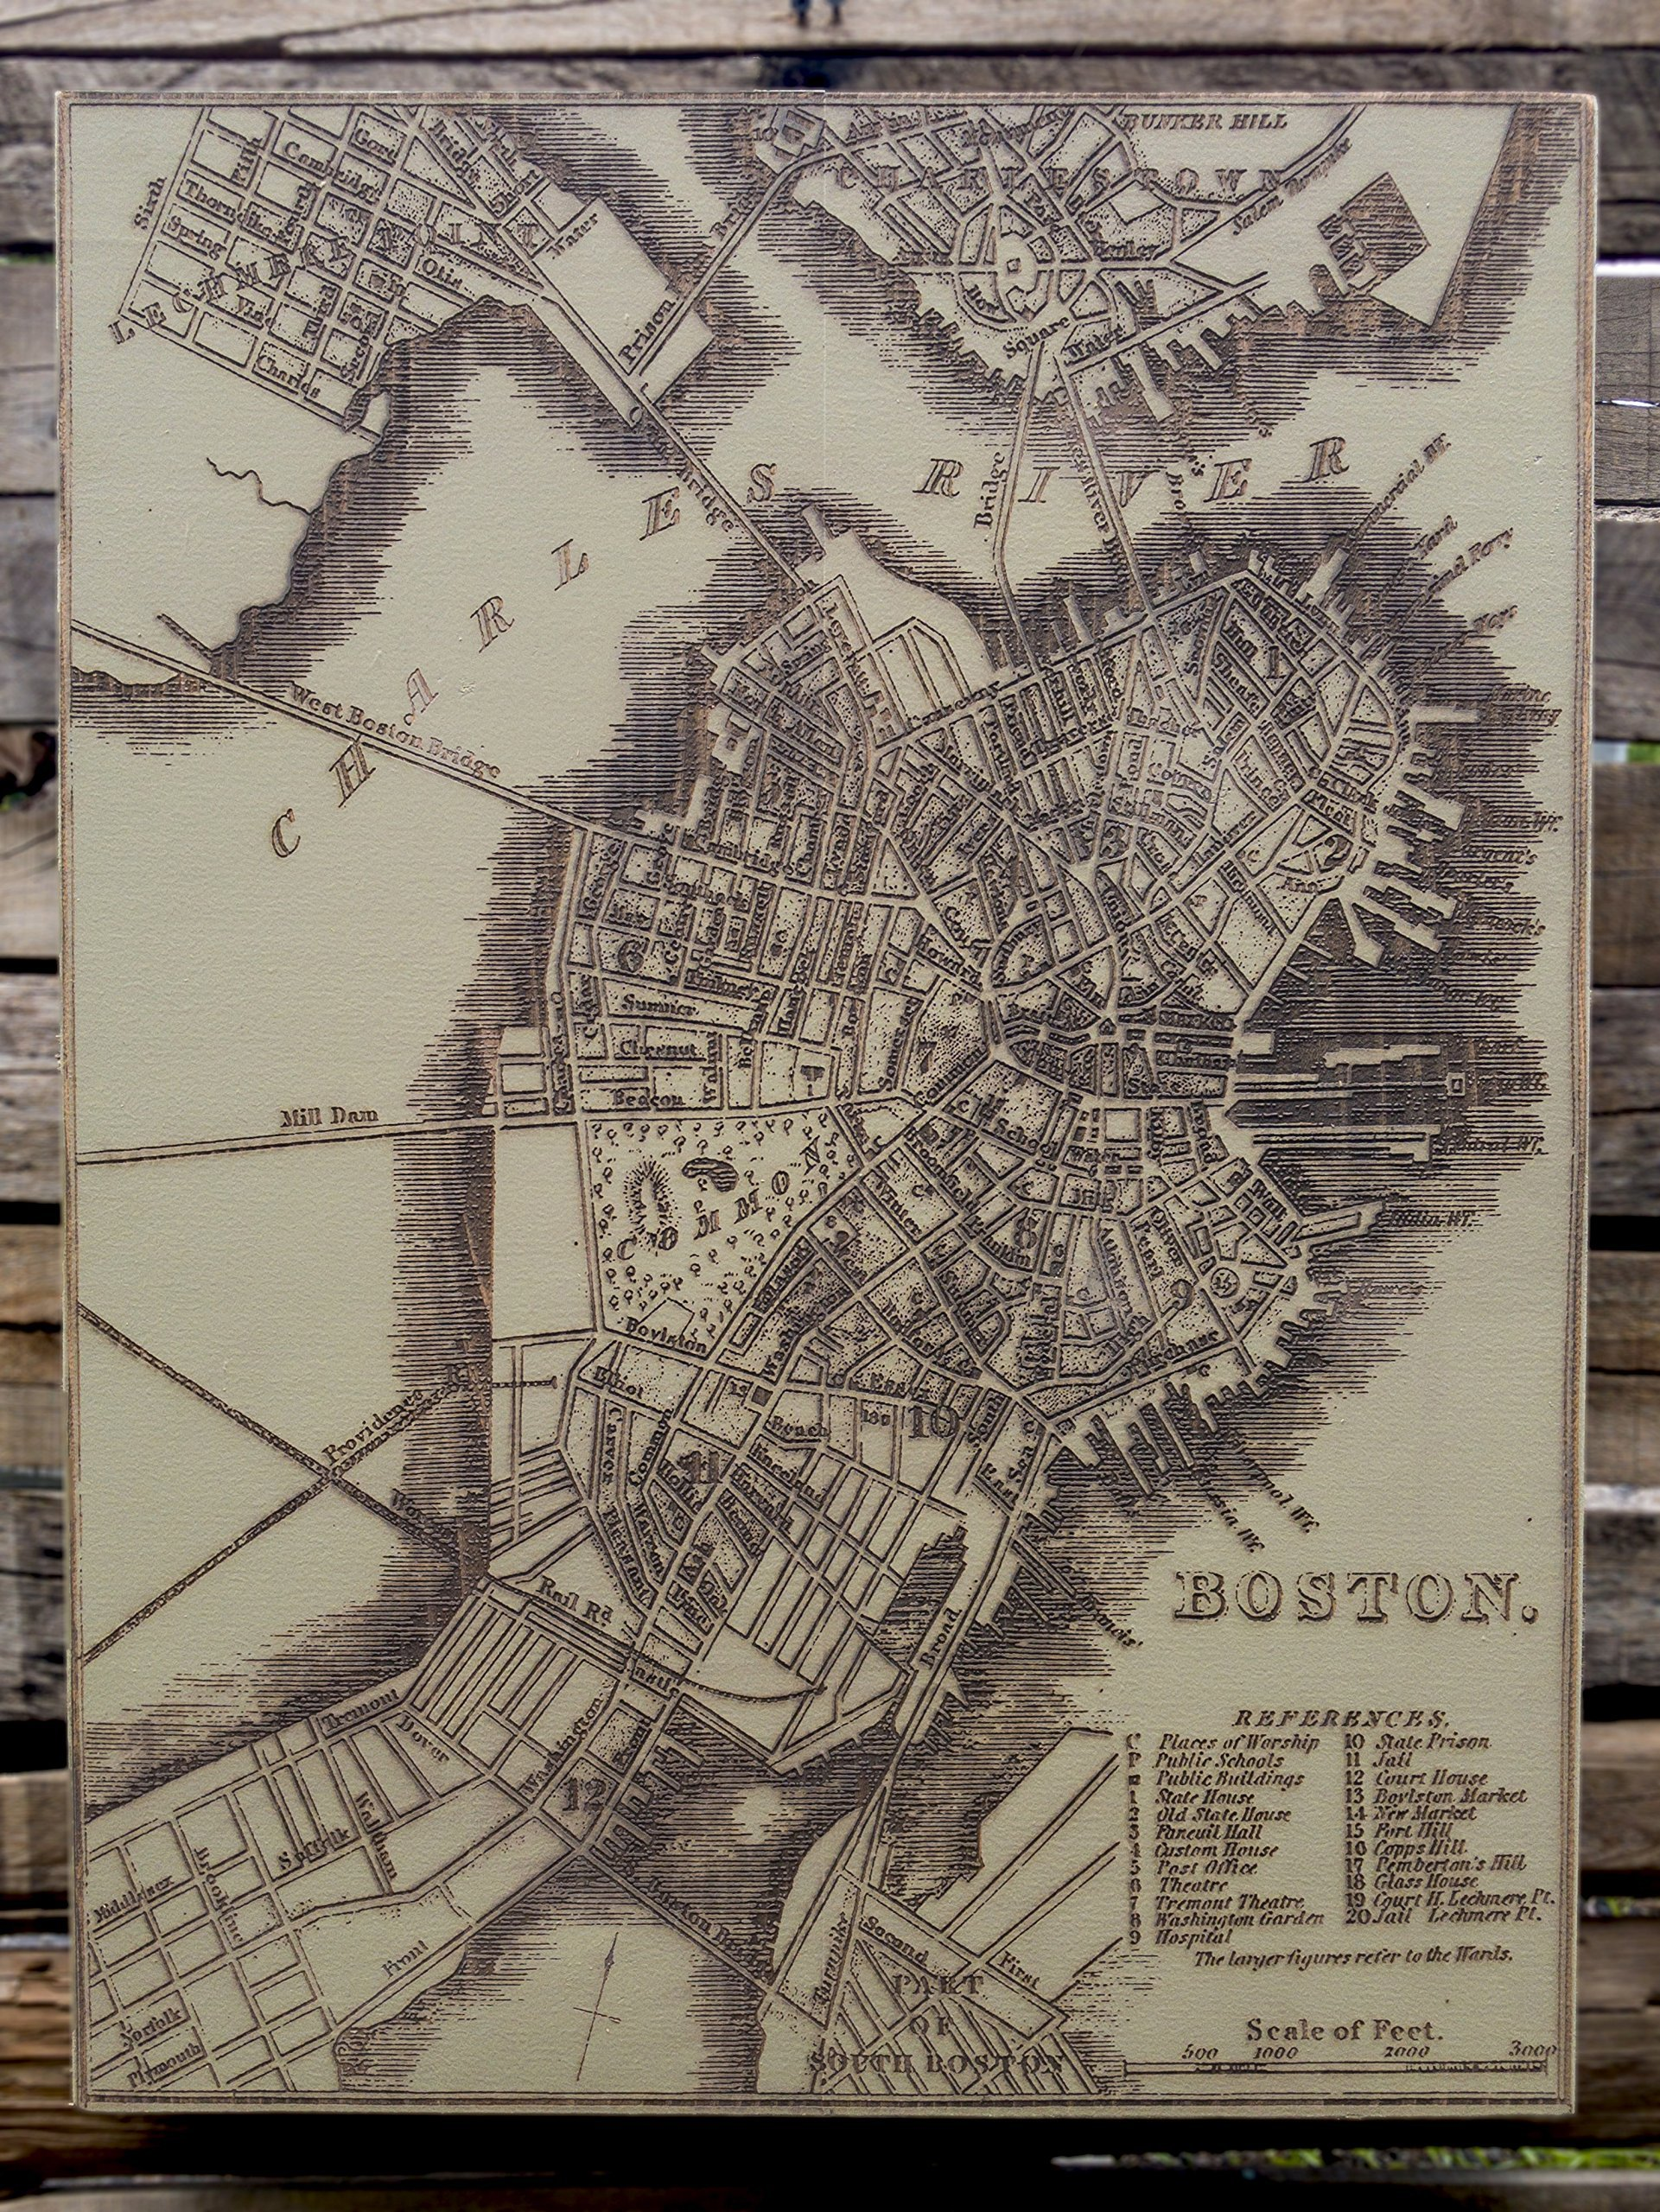 Historical Boston - 1842 wood engraved map